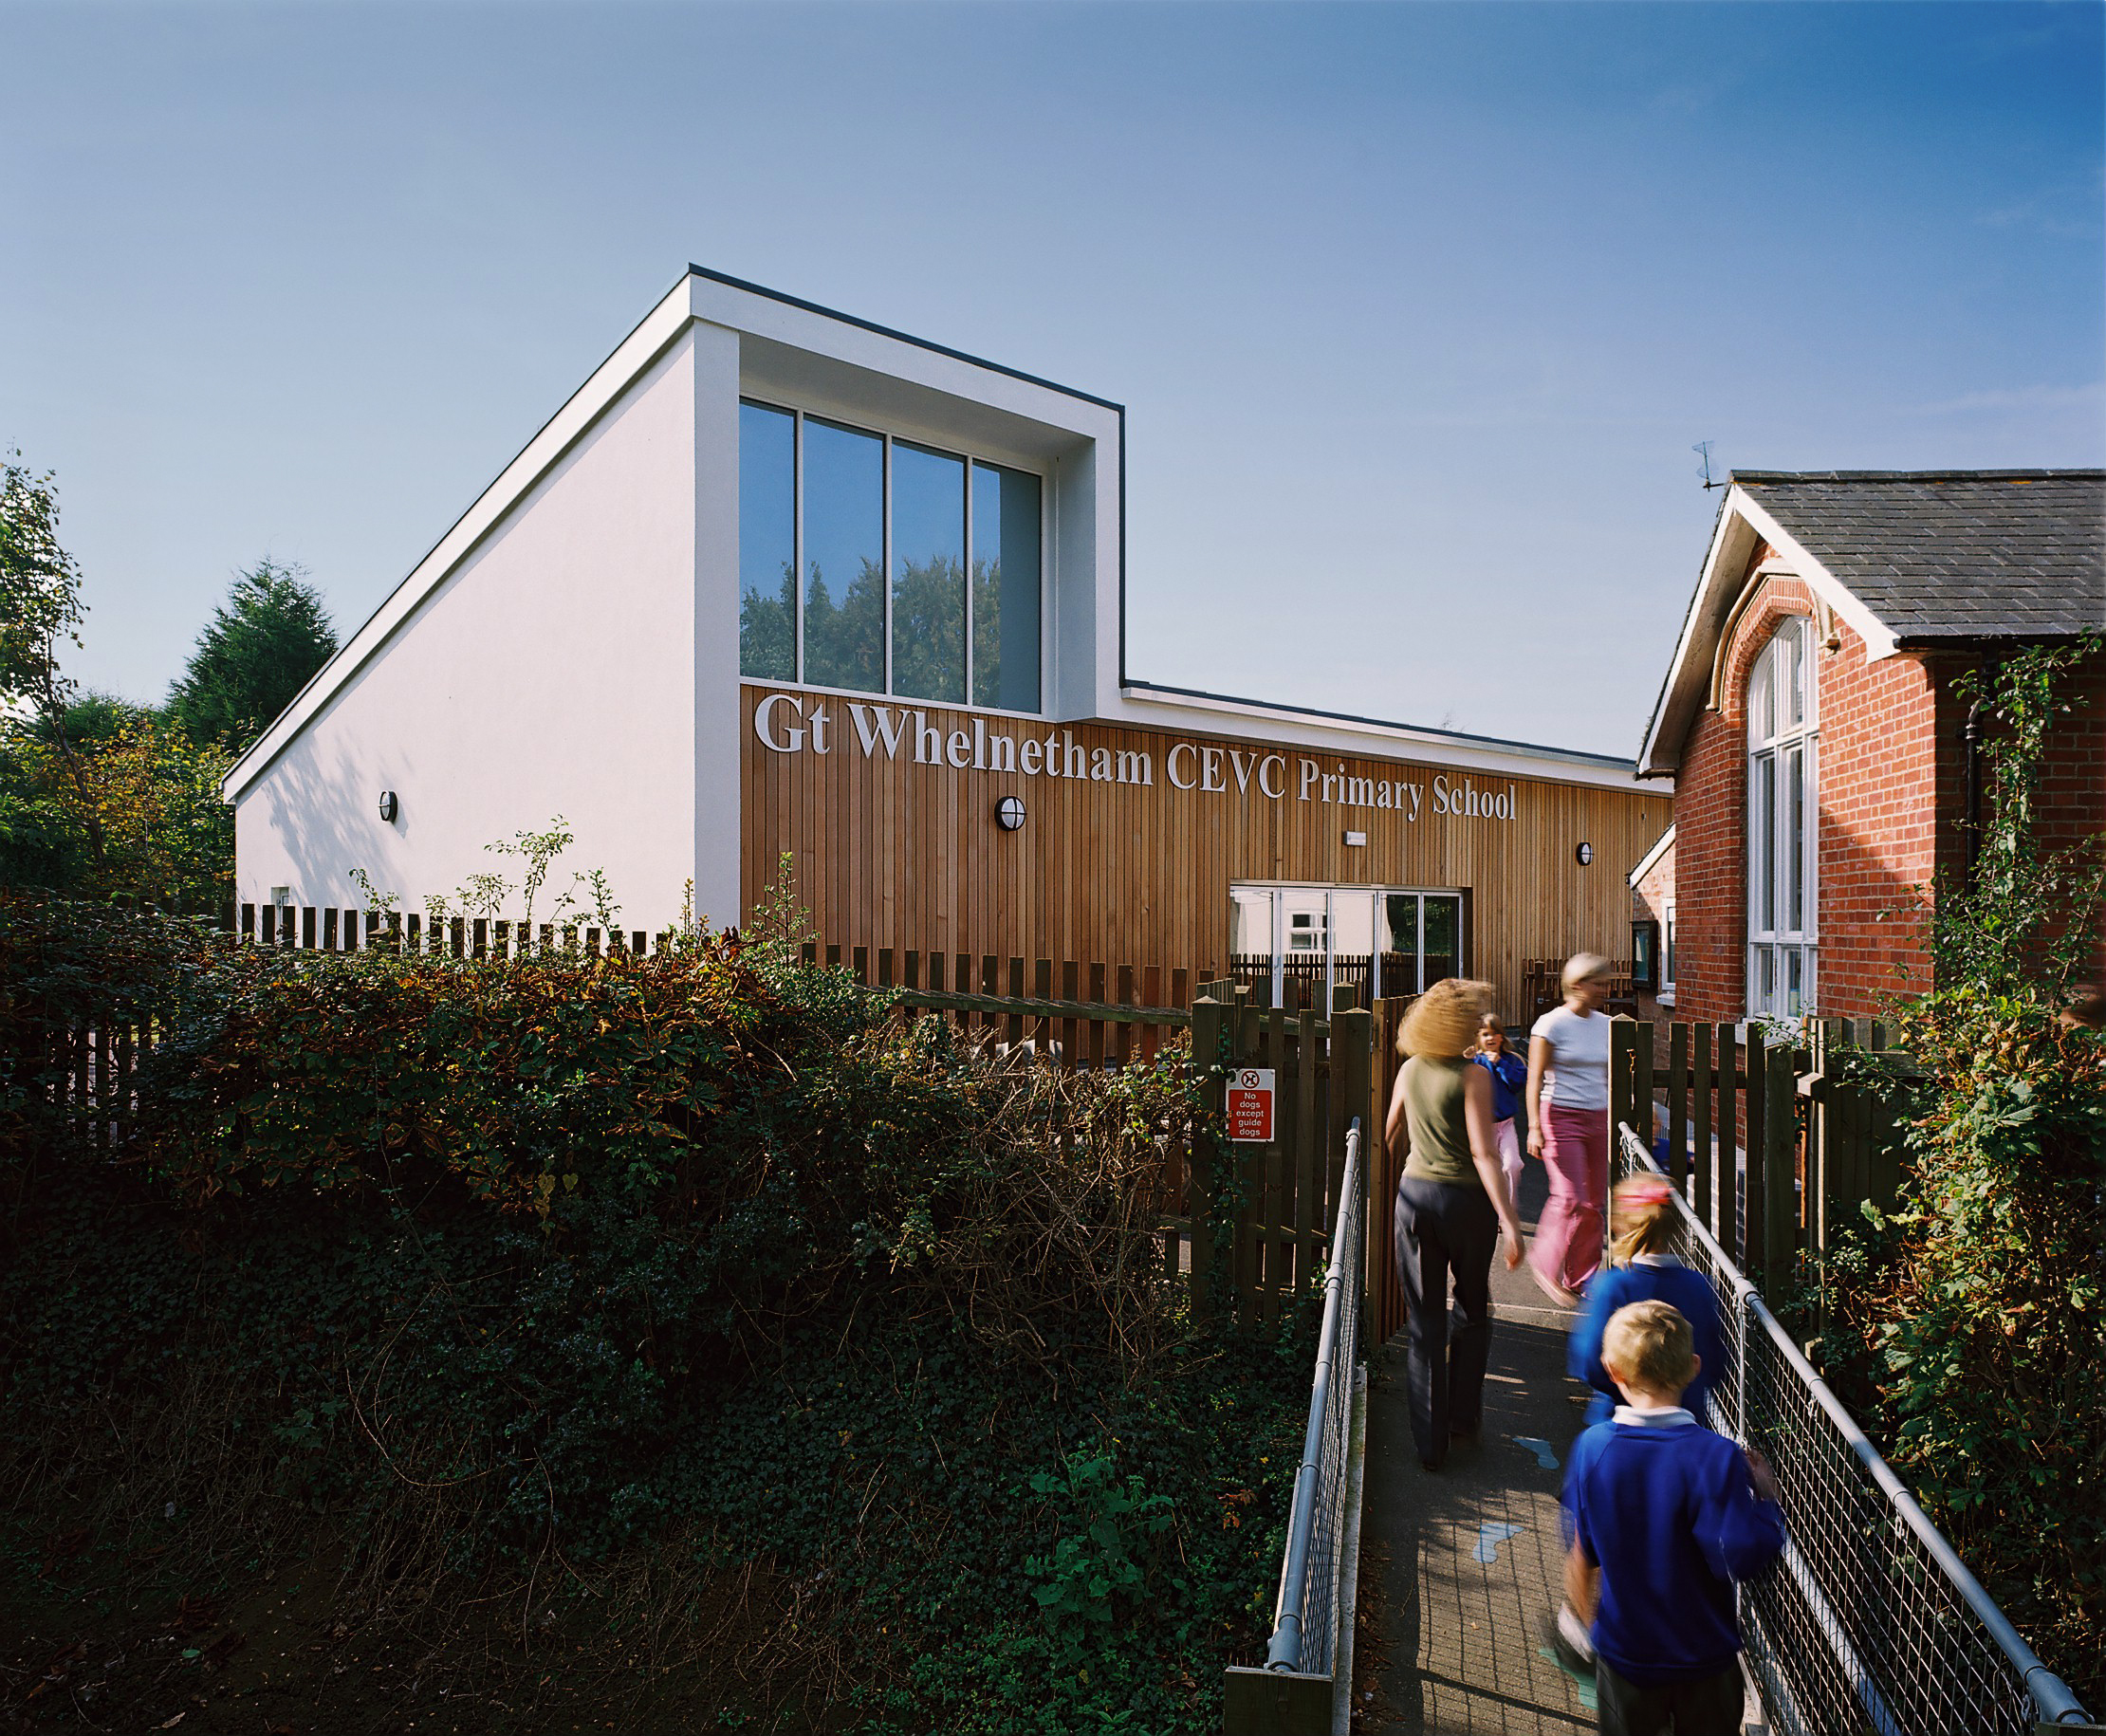 GT WHELNETHAM CEVC PRIMARY SCHOOL > >